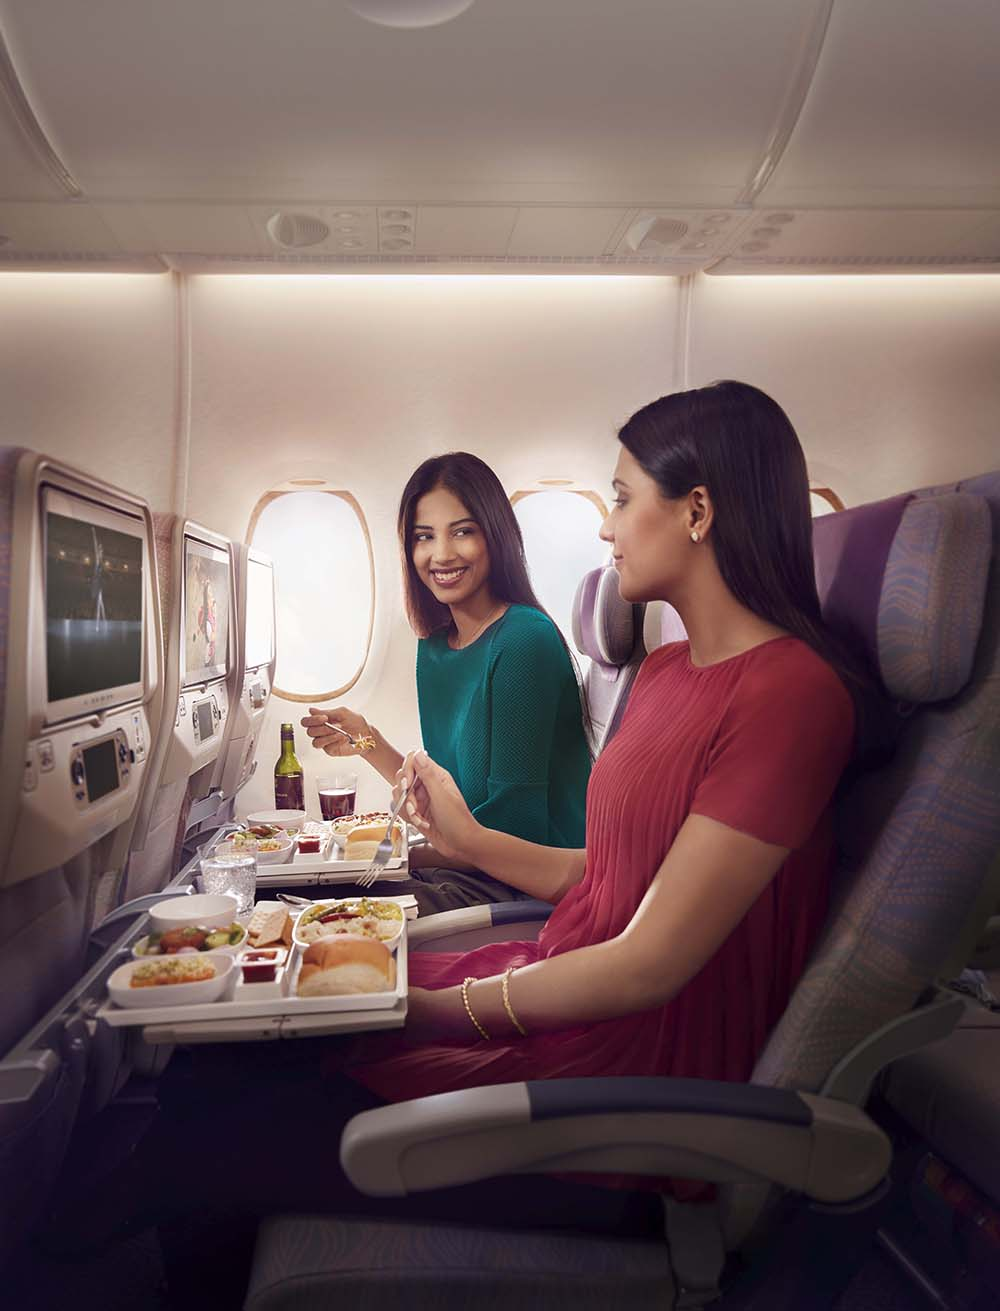 Economy Class Cuisine and Companion Fares